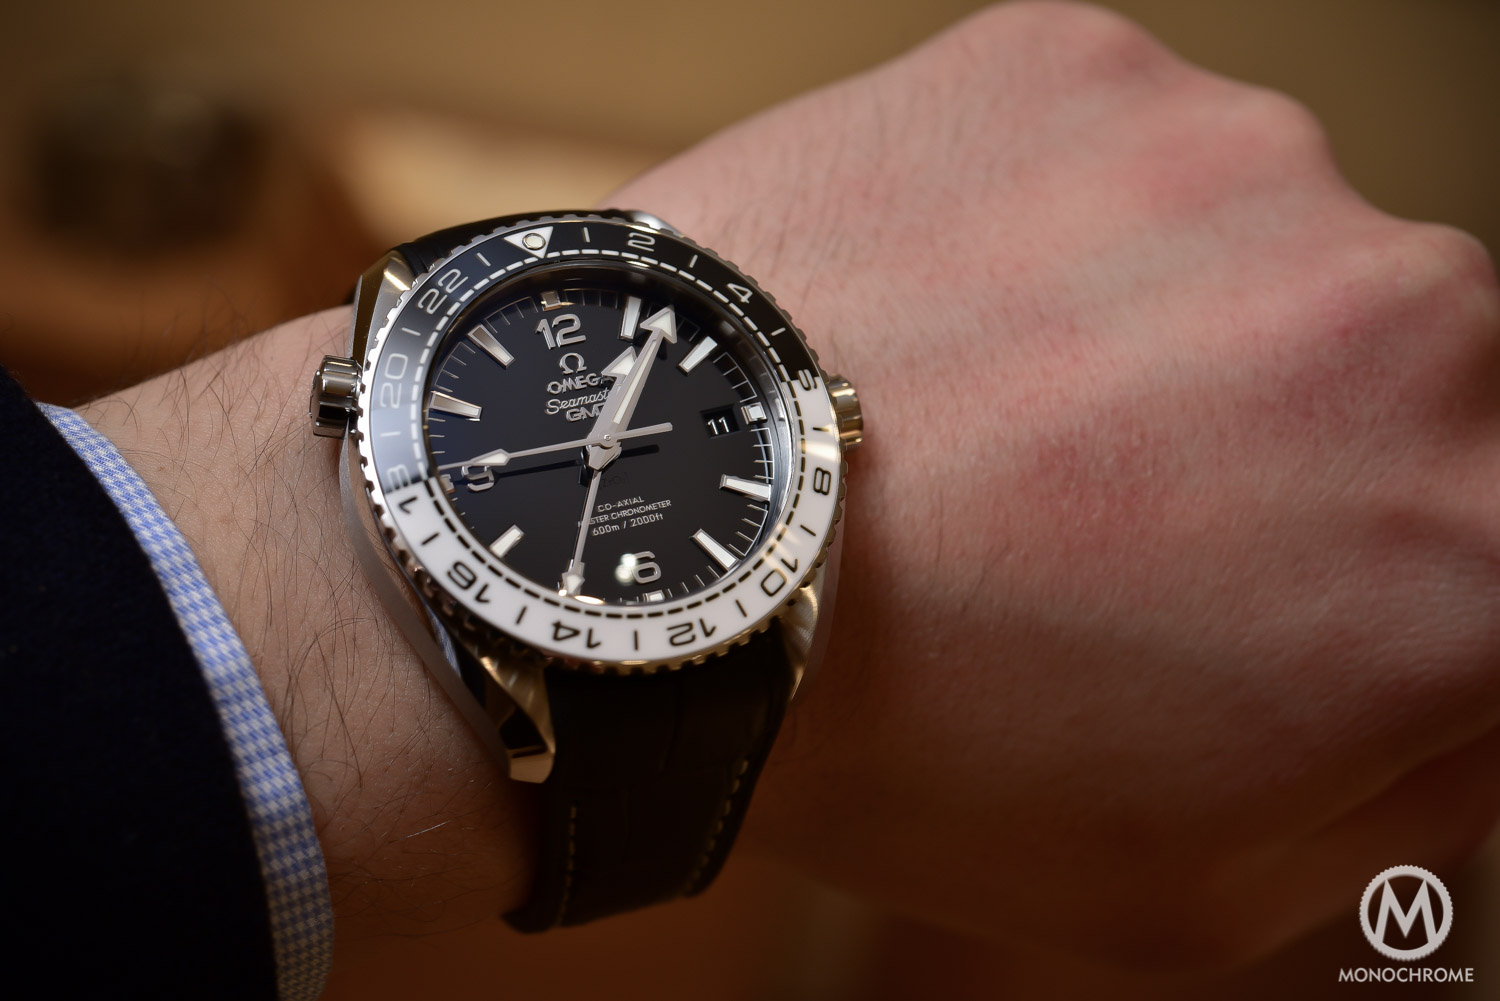 cc91a404a930 Introducing the new Omega Seamaster Planet Ocean GMT with Master ...